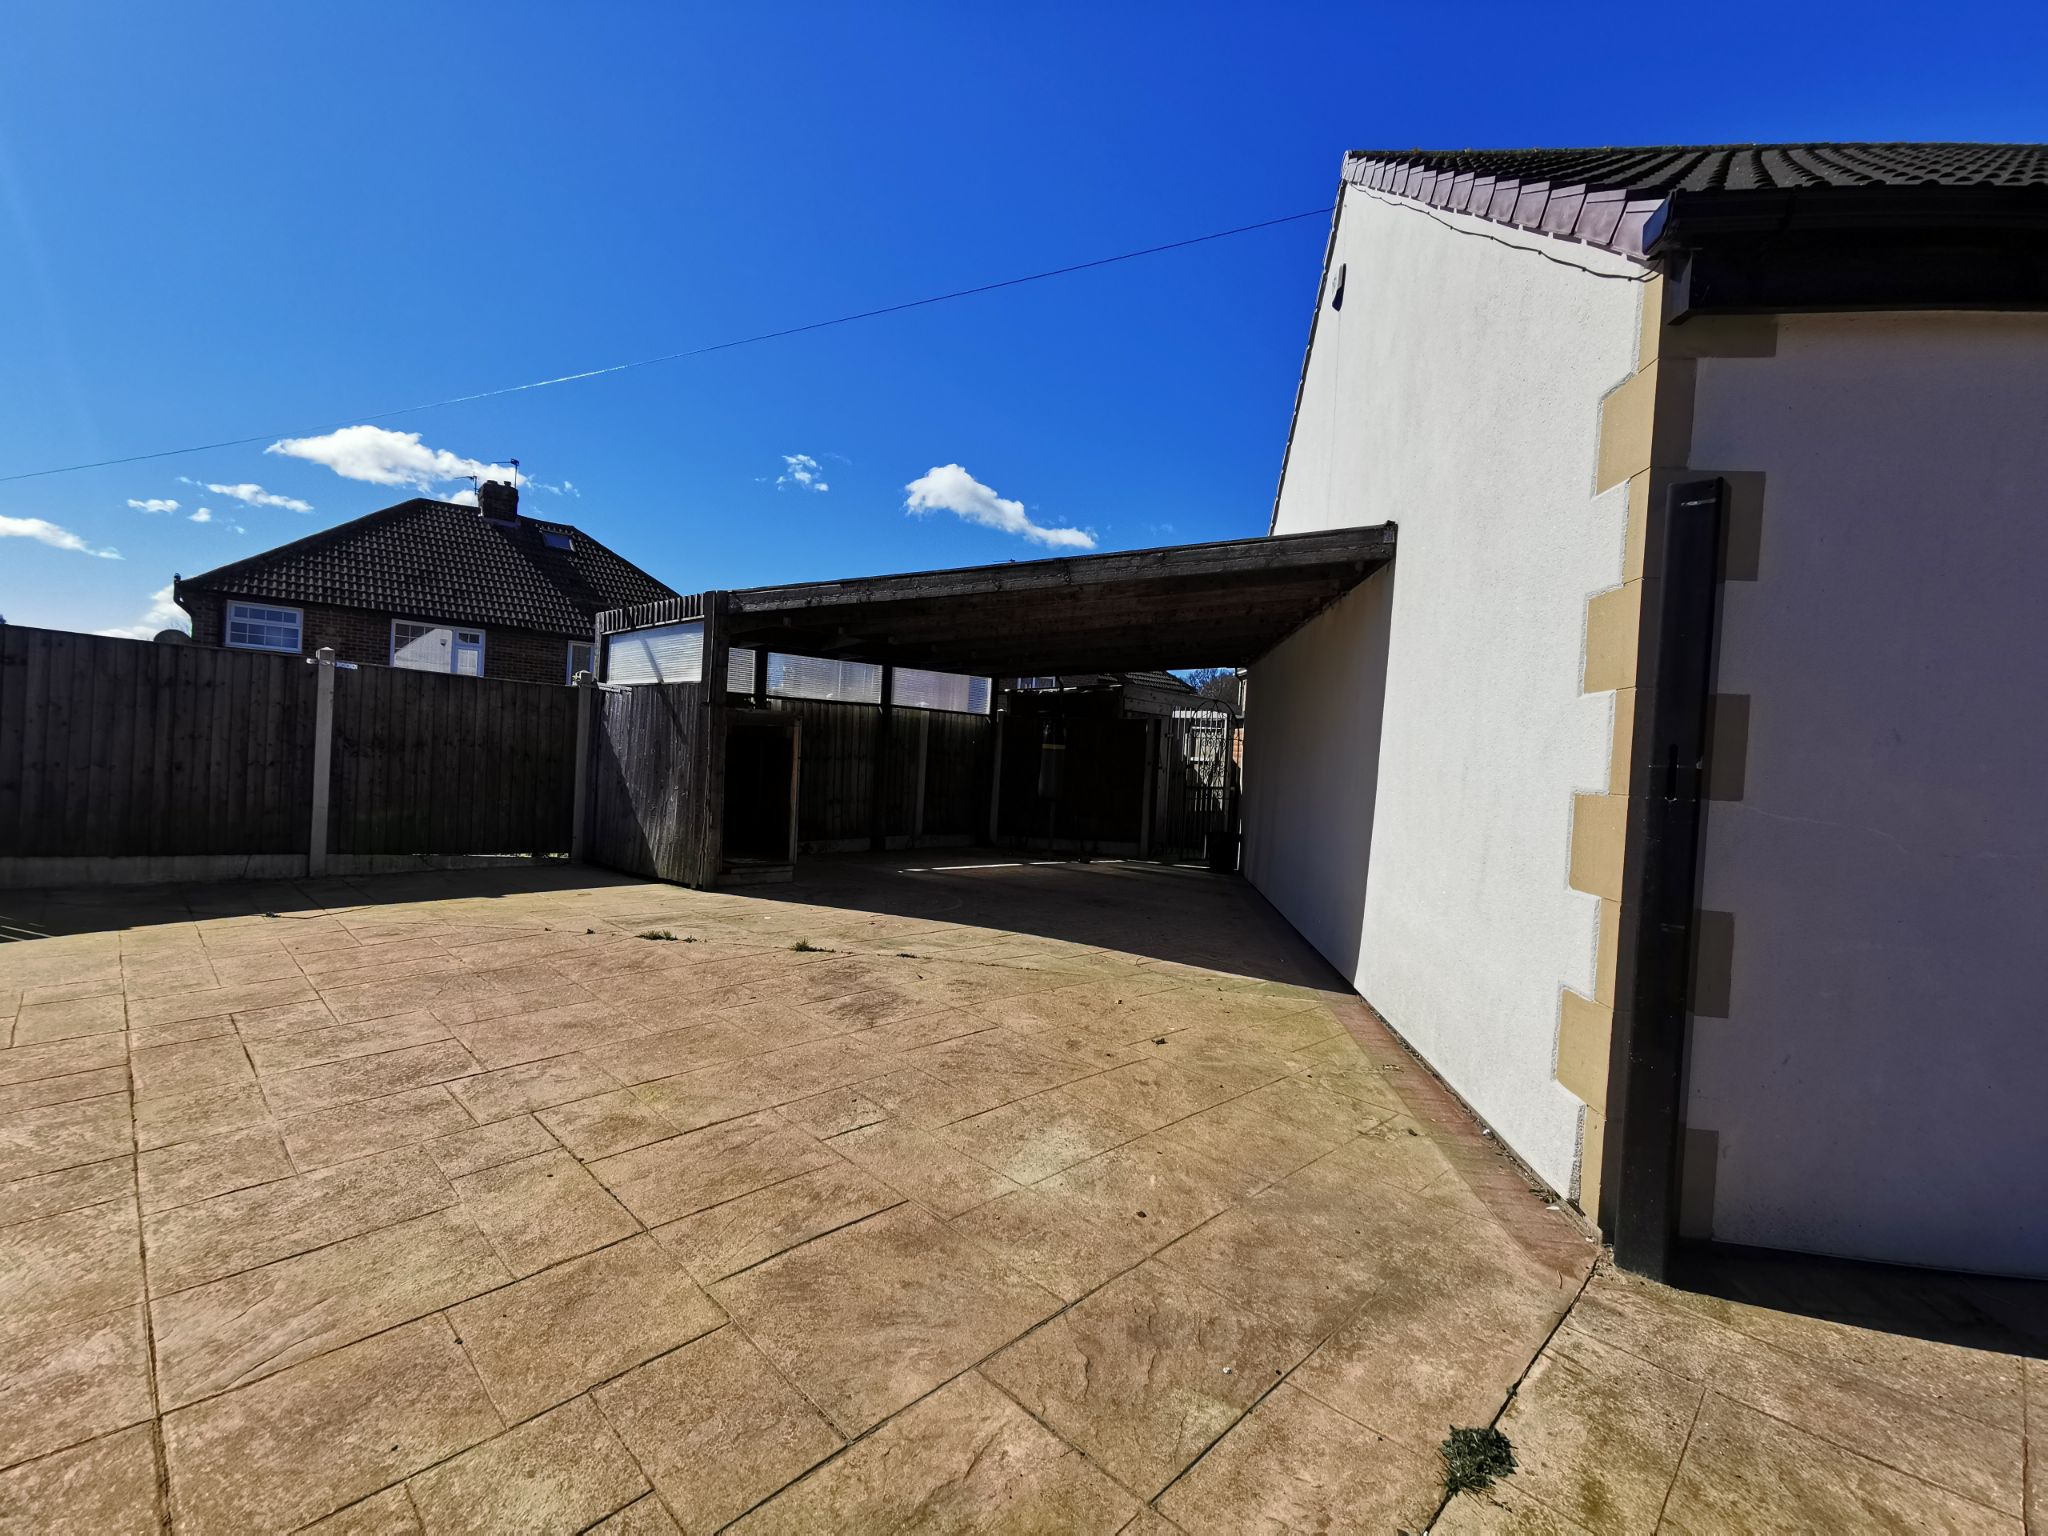 6 bedroom detached bungalow For Sale in Bradford - Photograph 6.